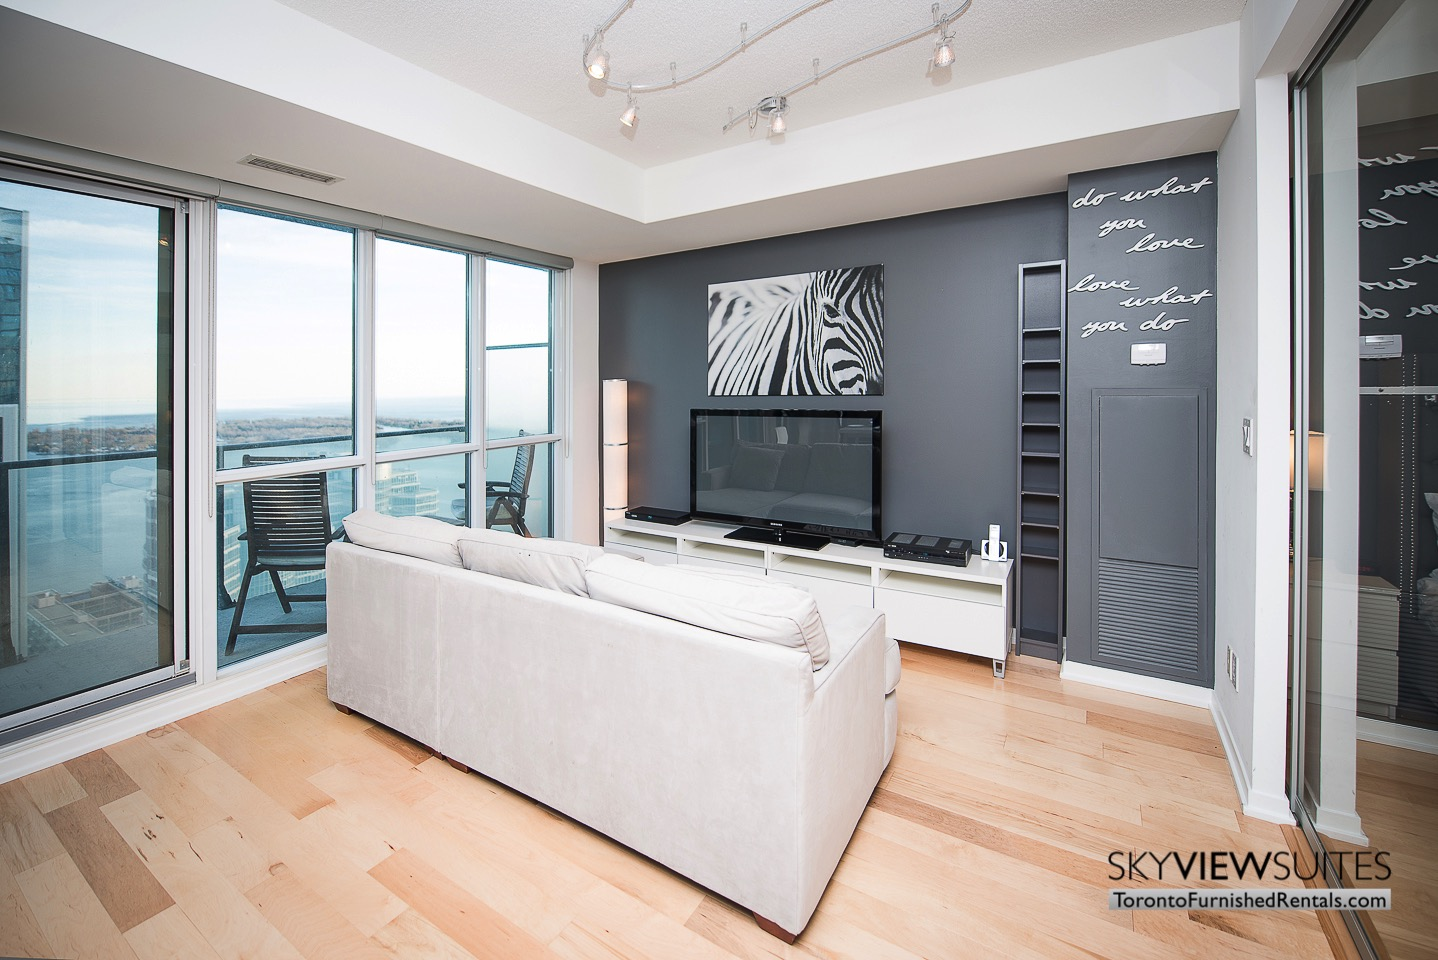 MLS furnished condo toronto couch and balcony